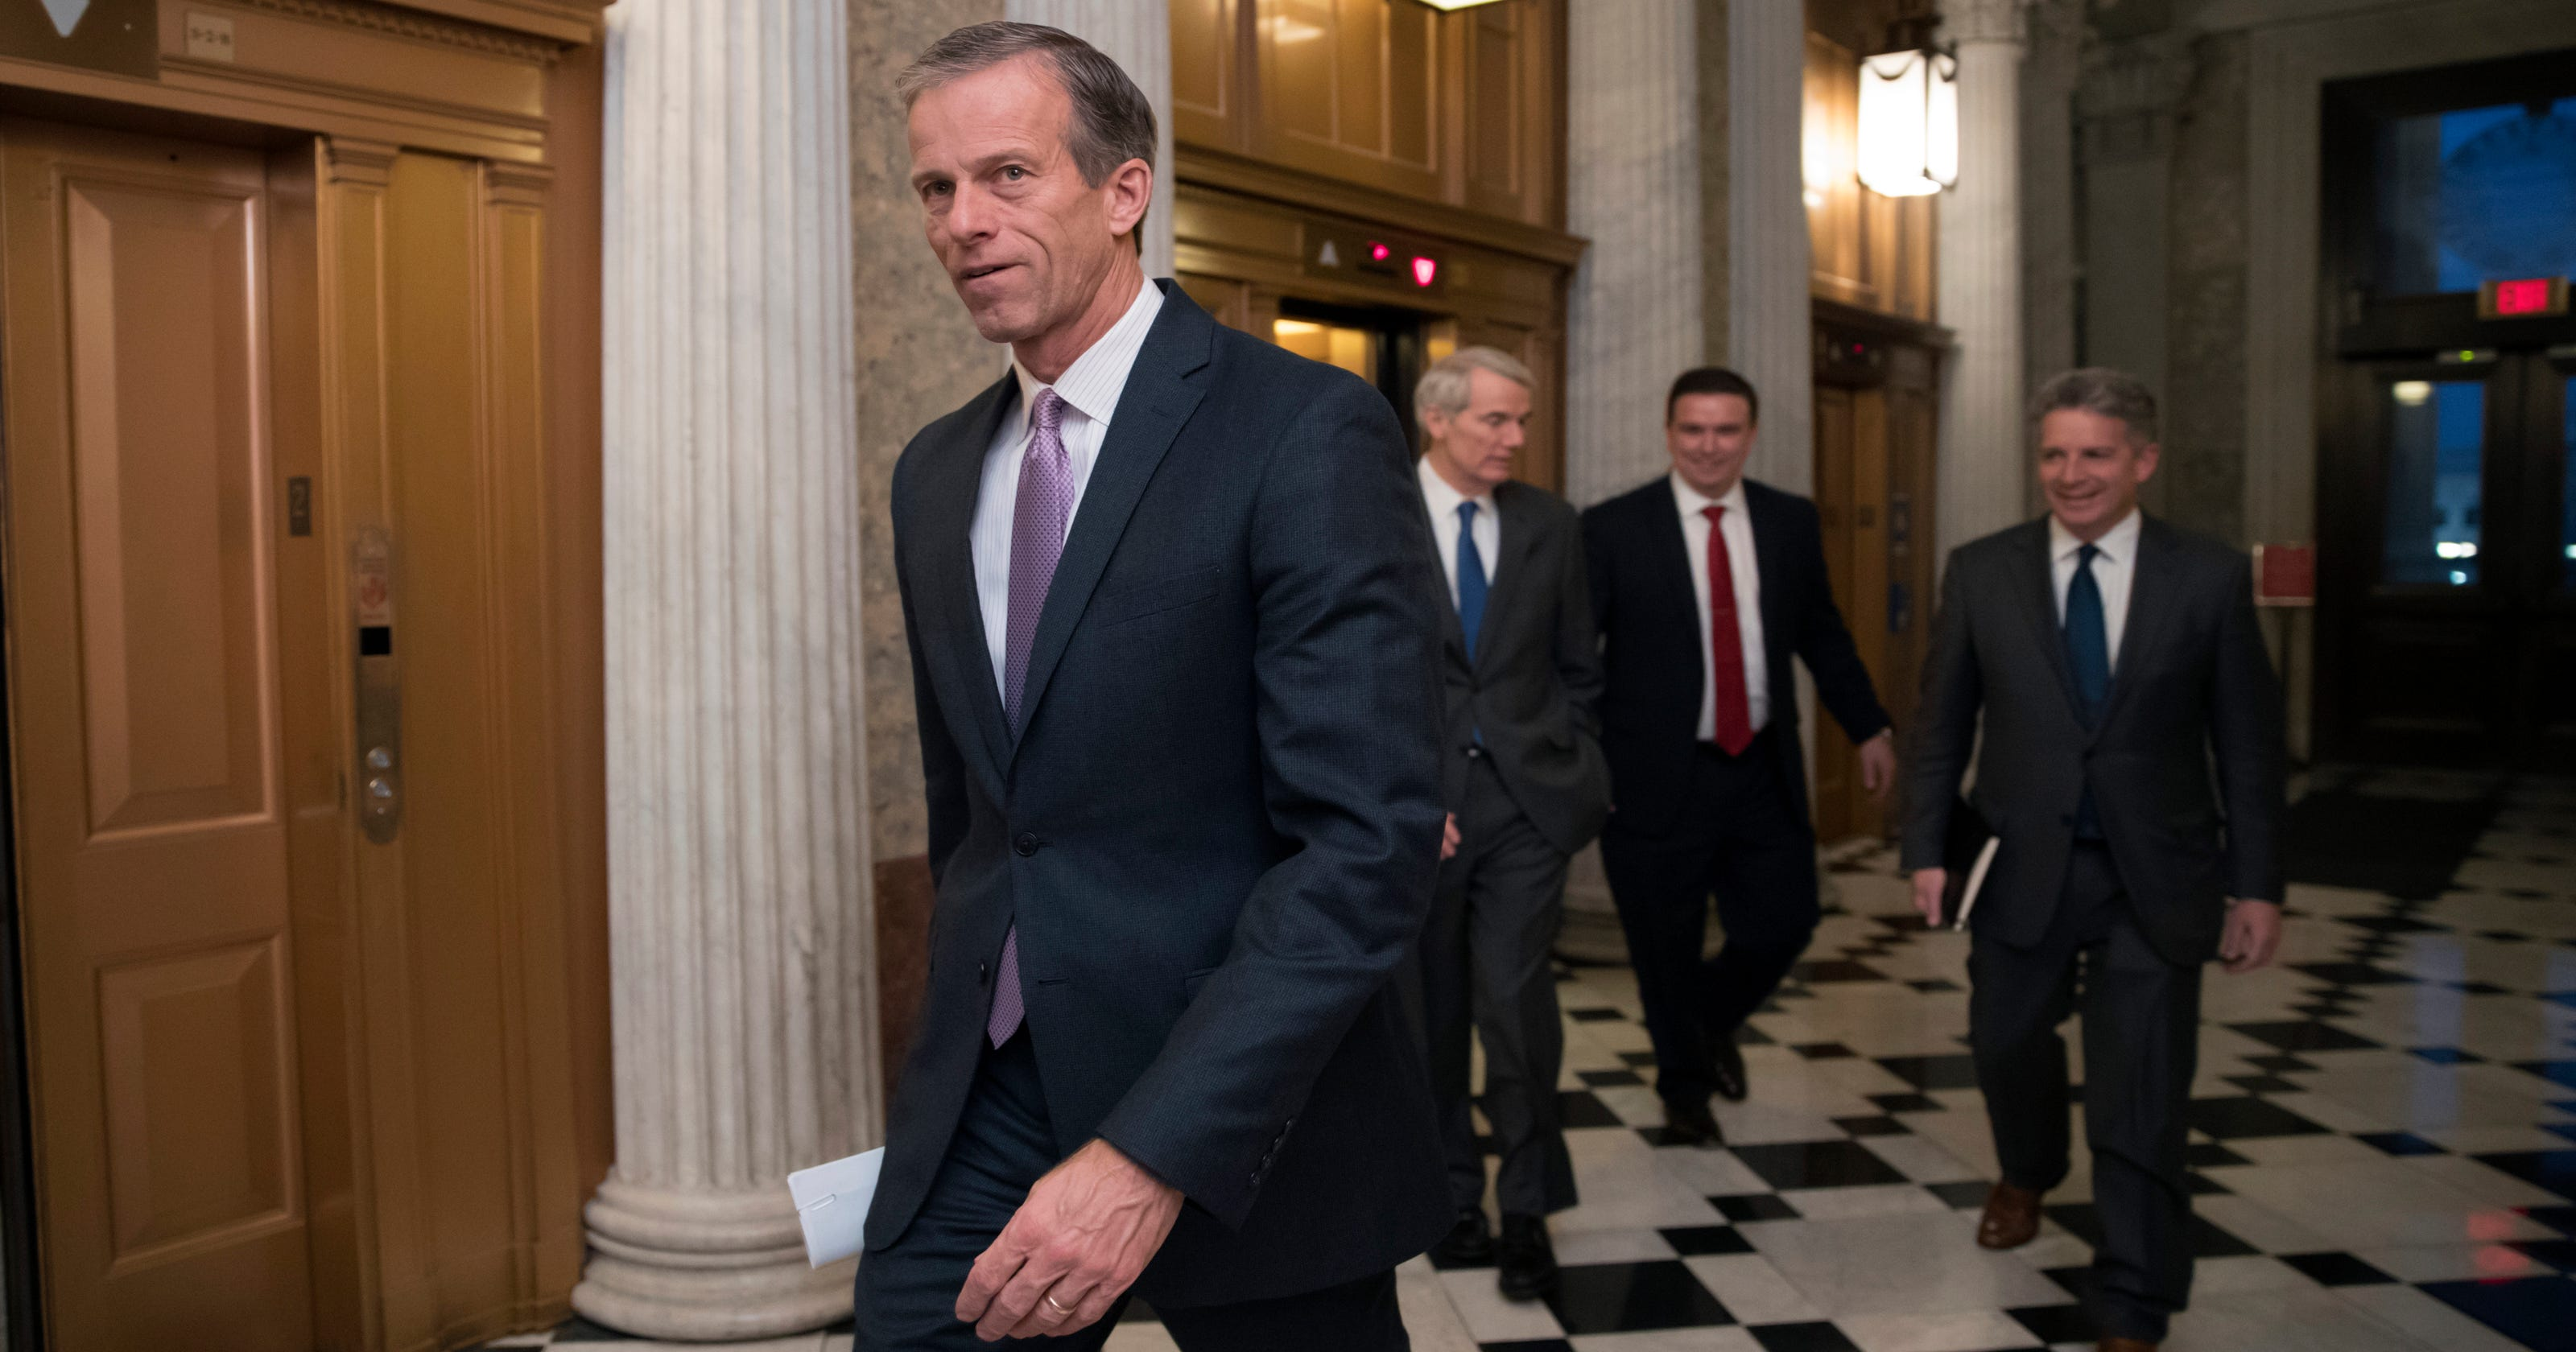 Privacy groups upset at not being invited to Thune hearing on data privacy